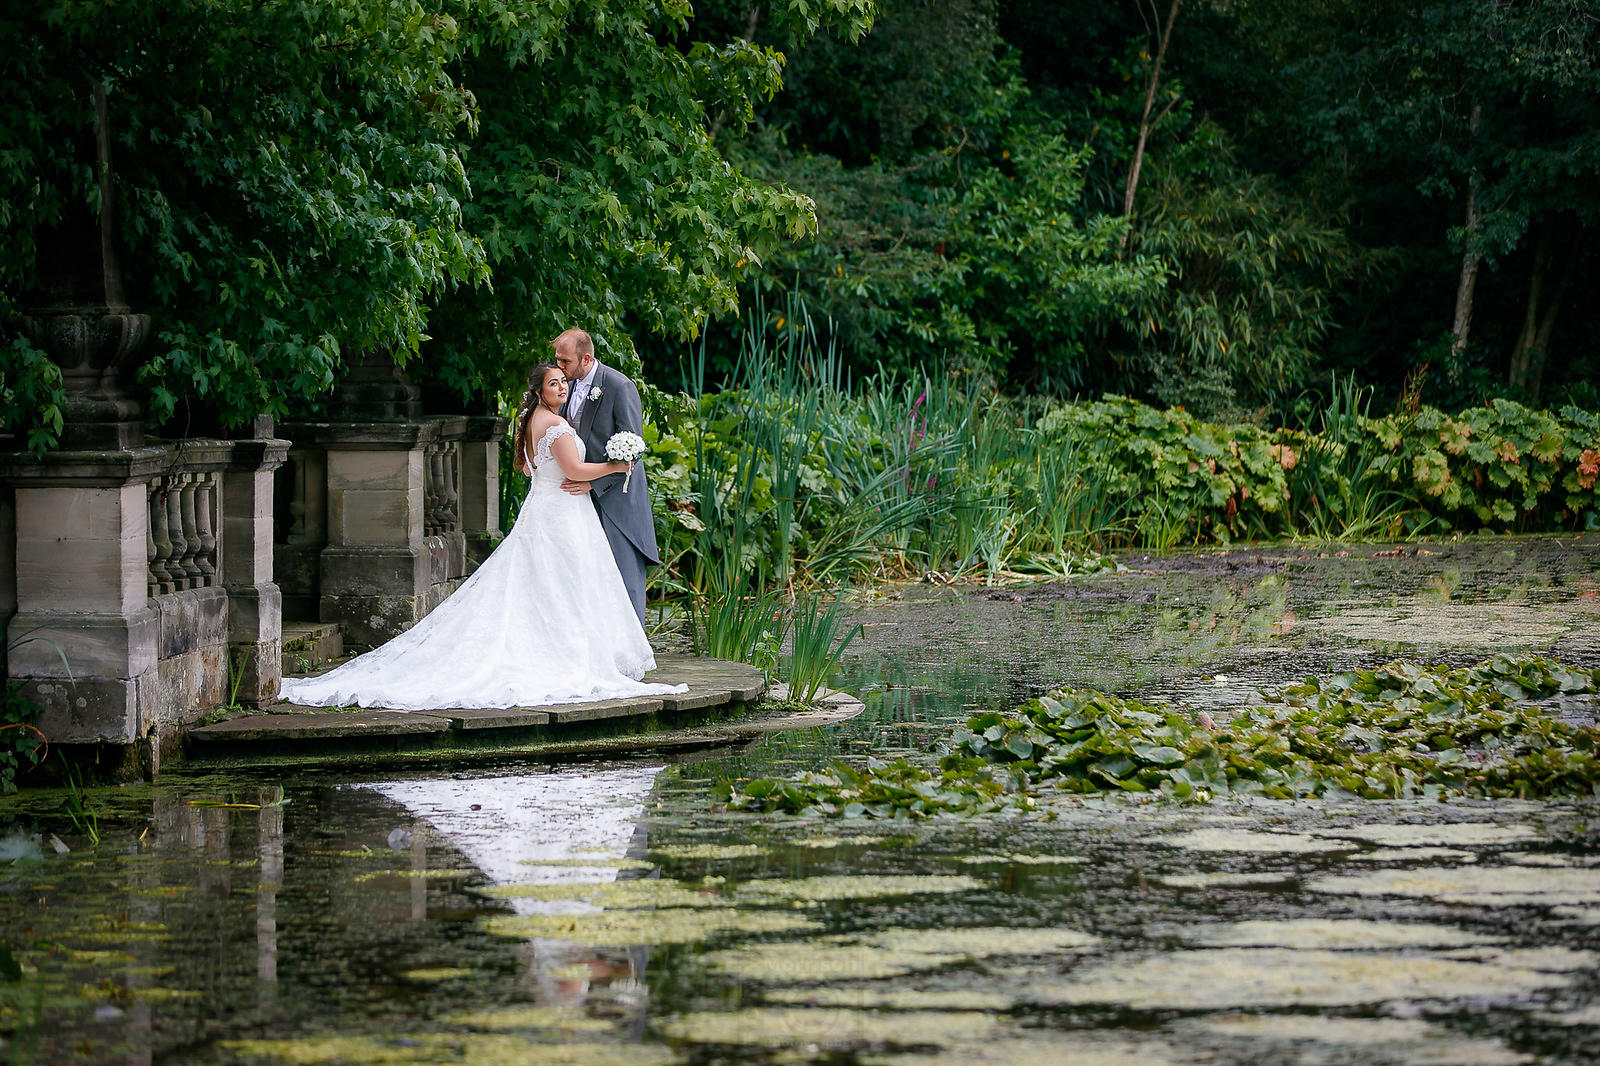 Wedding at Dunchurch Park Hotel, Dunchurch, Warwickshire, UK